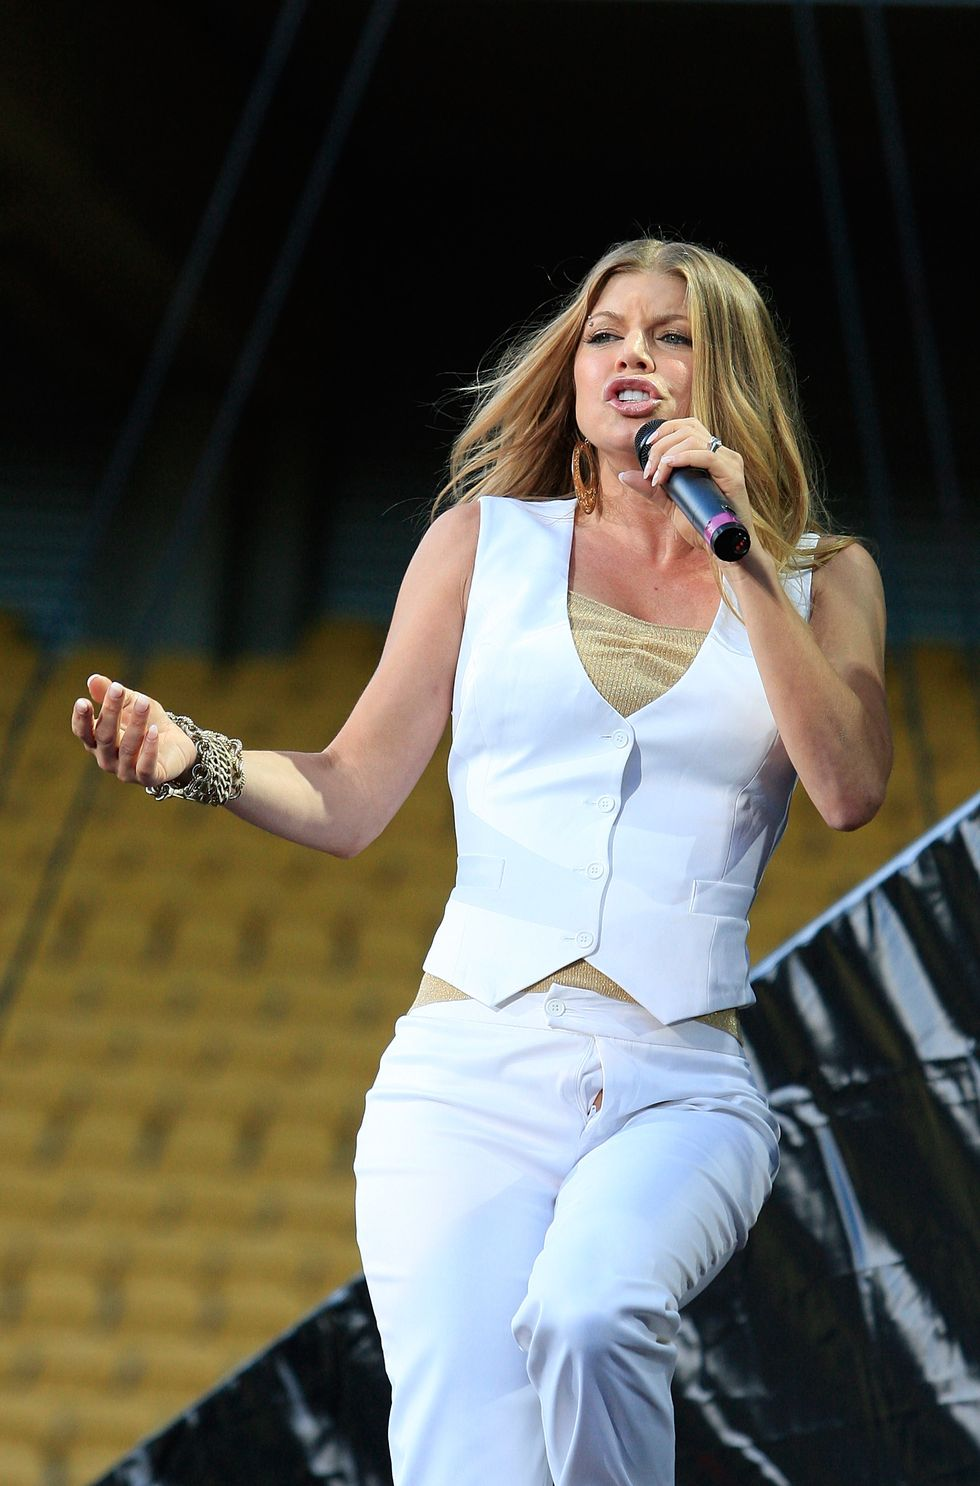 fergie-performs-on-stage-at-westpac-stadium-in-wellington-01